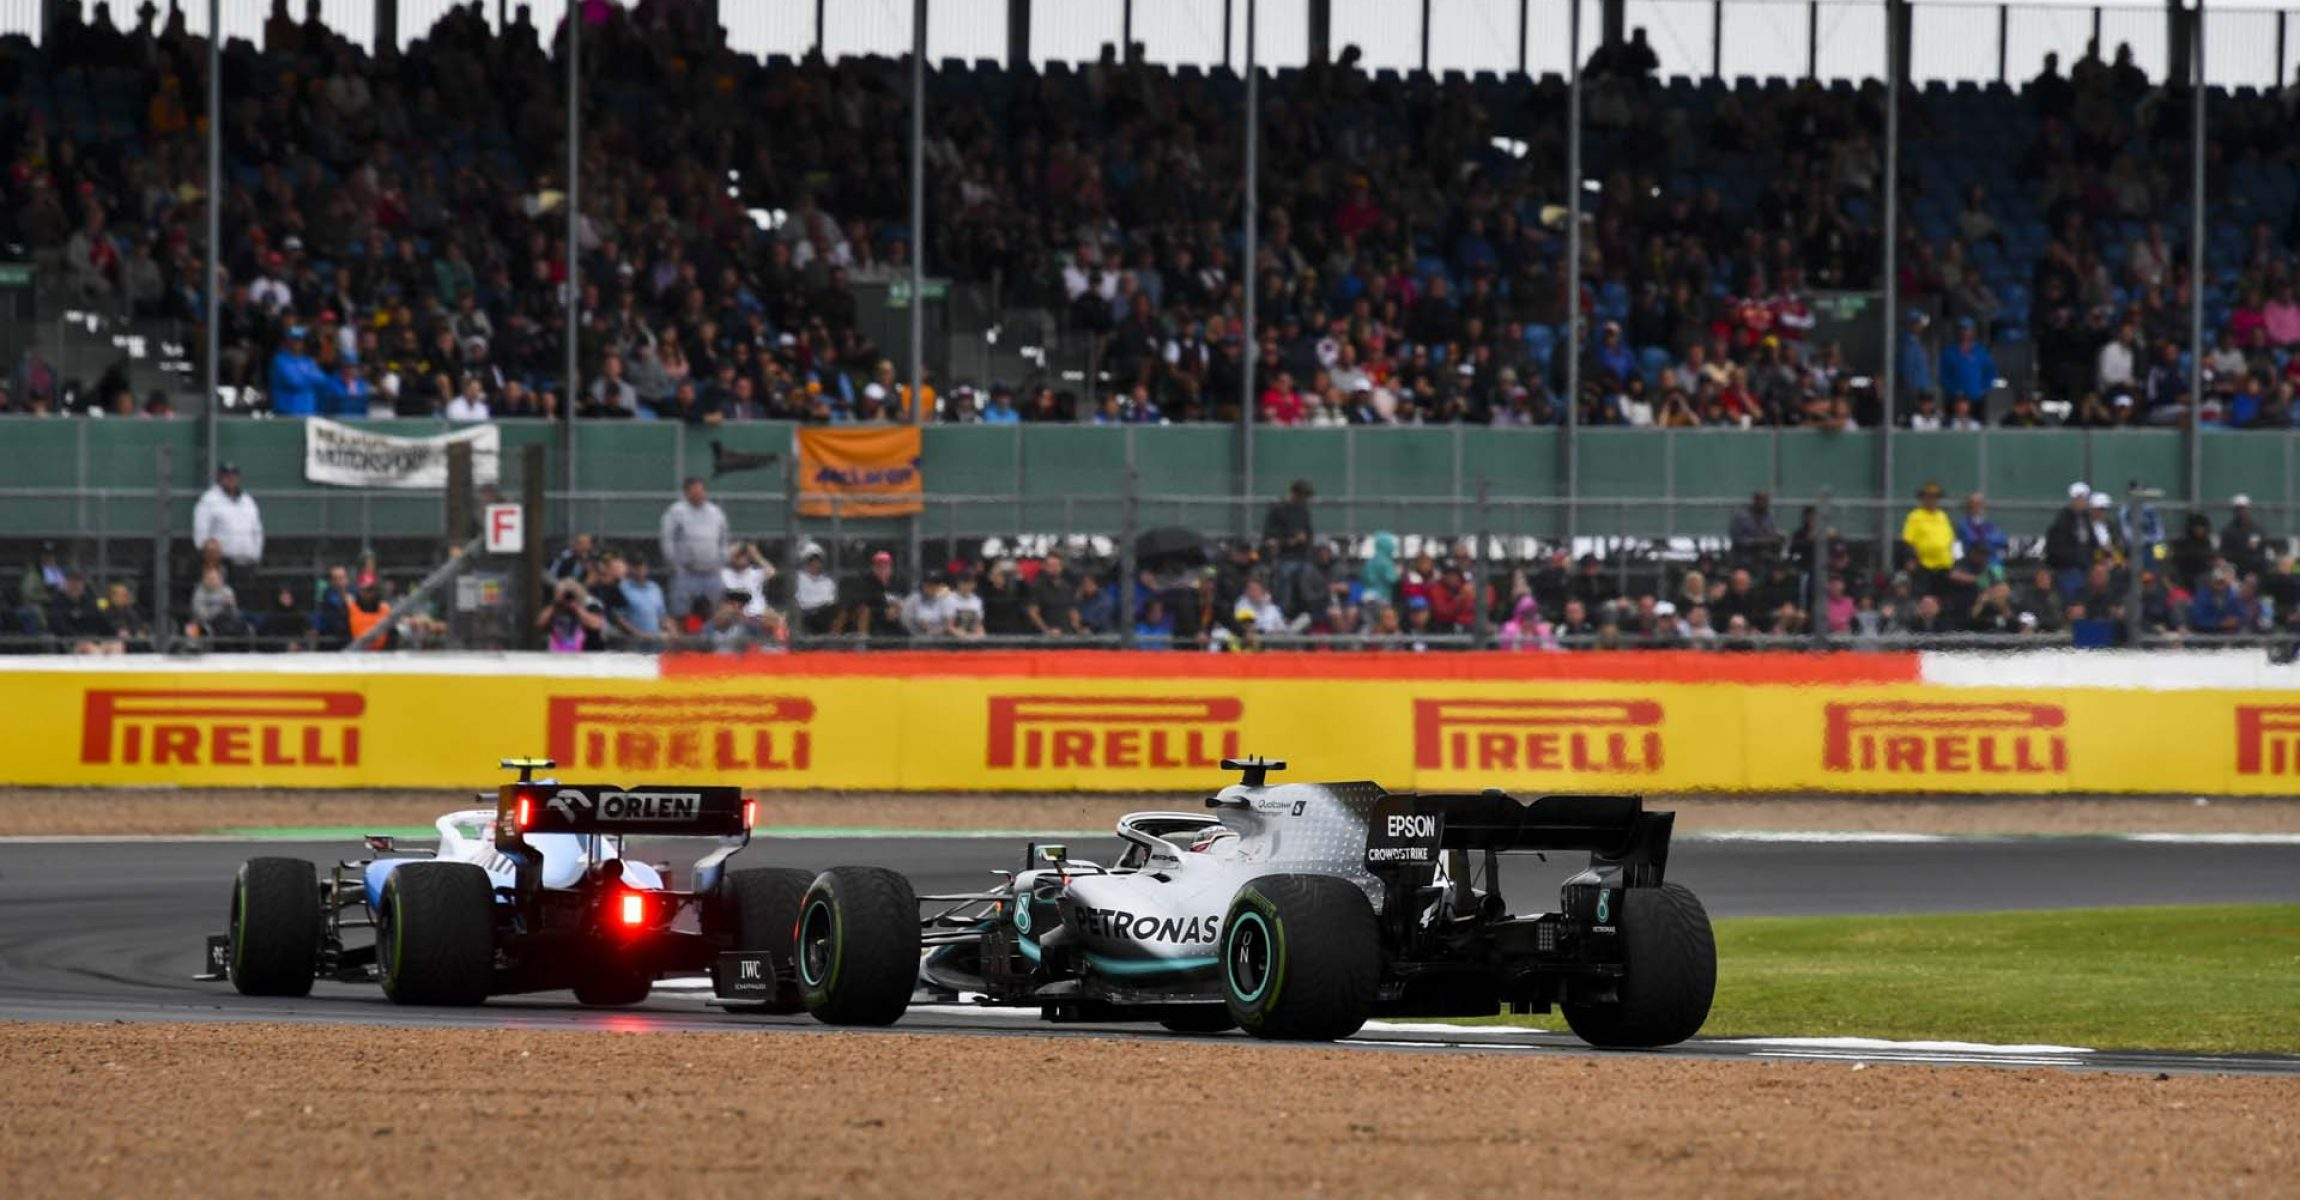 SILVERSTONE, UNITED KINGDOM - JULY 13: Robert Kubica, Williams FW42, leads Lewis Hamilton, Mercedes AMG F1 W10 during the British GP at Silverstone on July 13, 2019 in Silverstone, United Kingdom. (Photo by Mark Sutton / LAT Images)